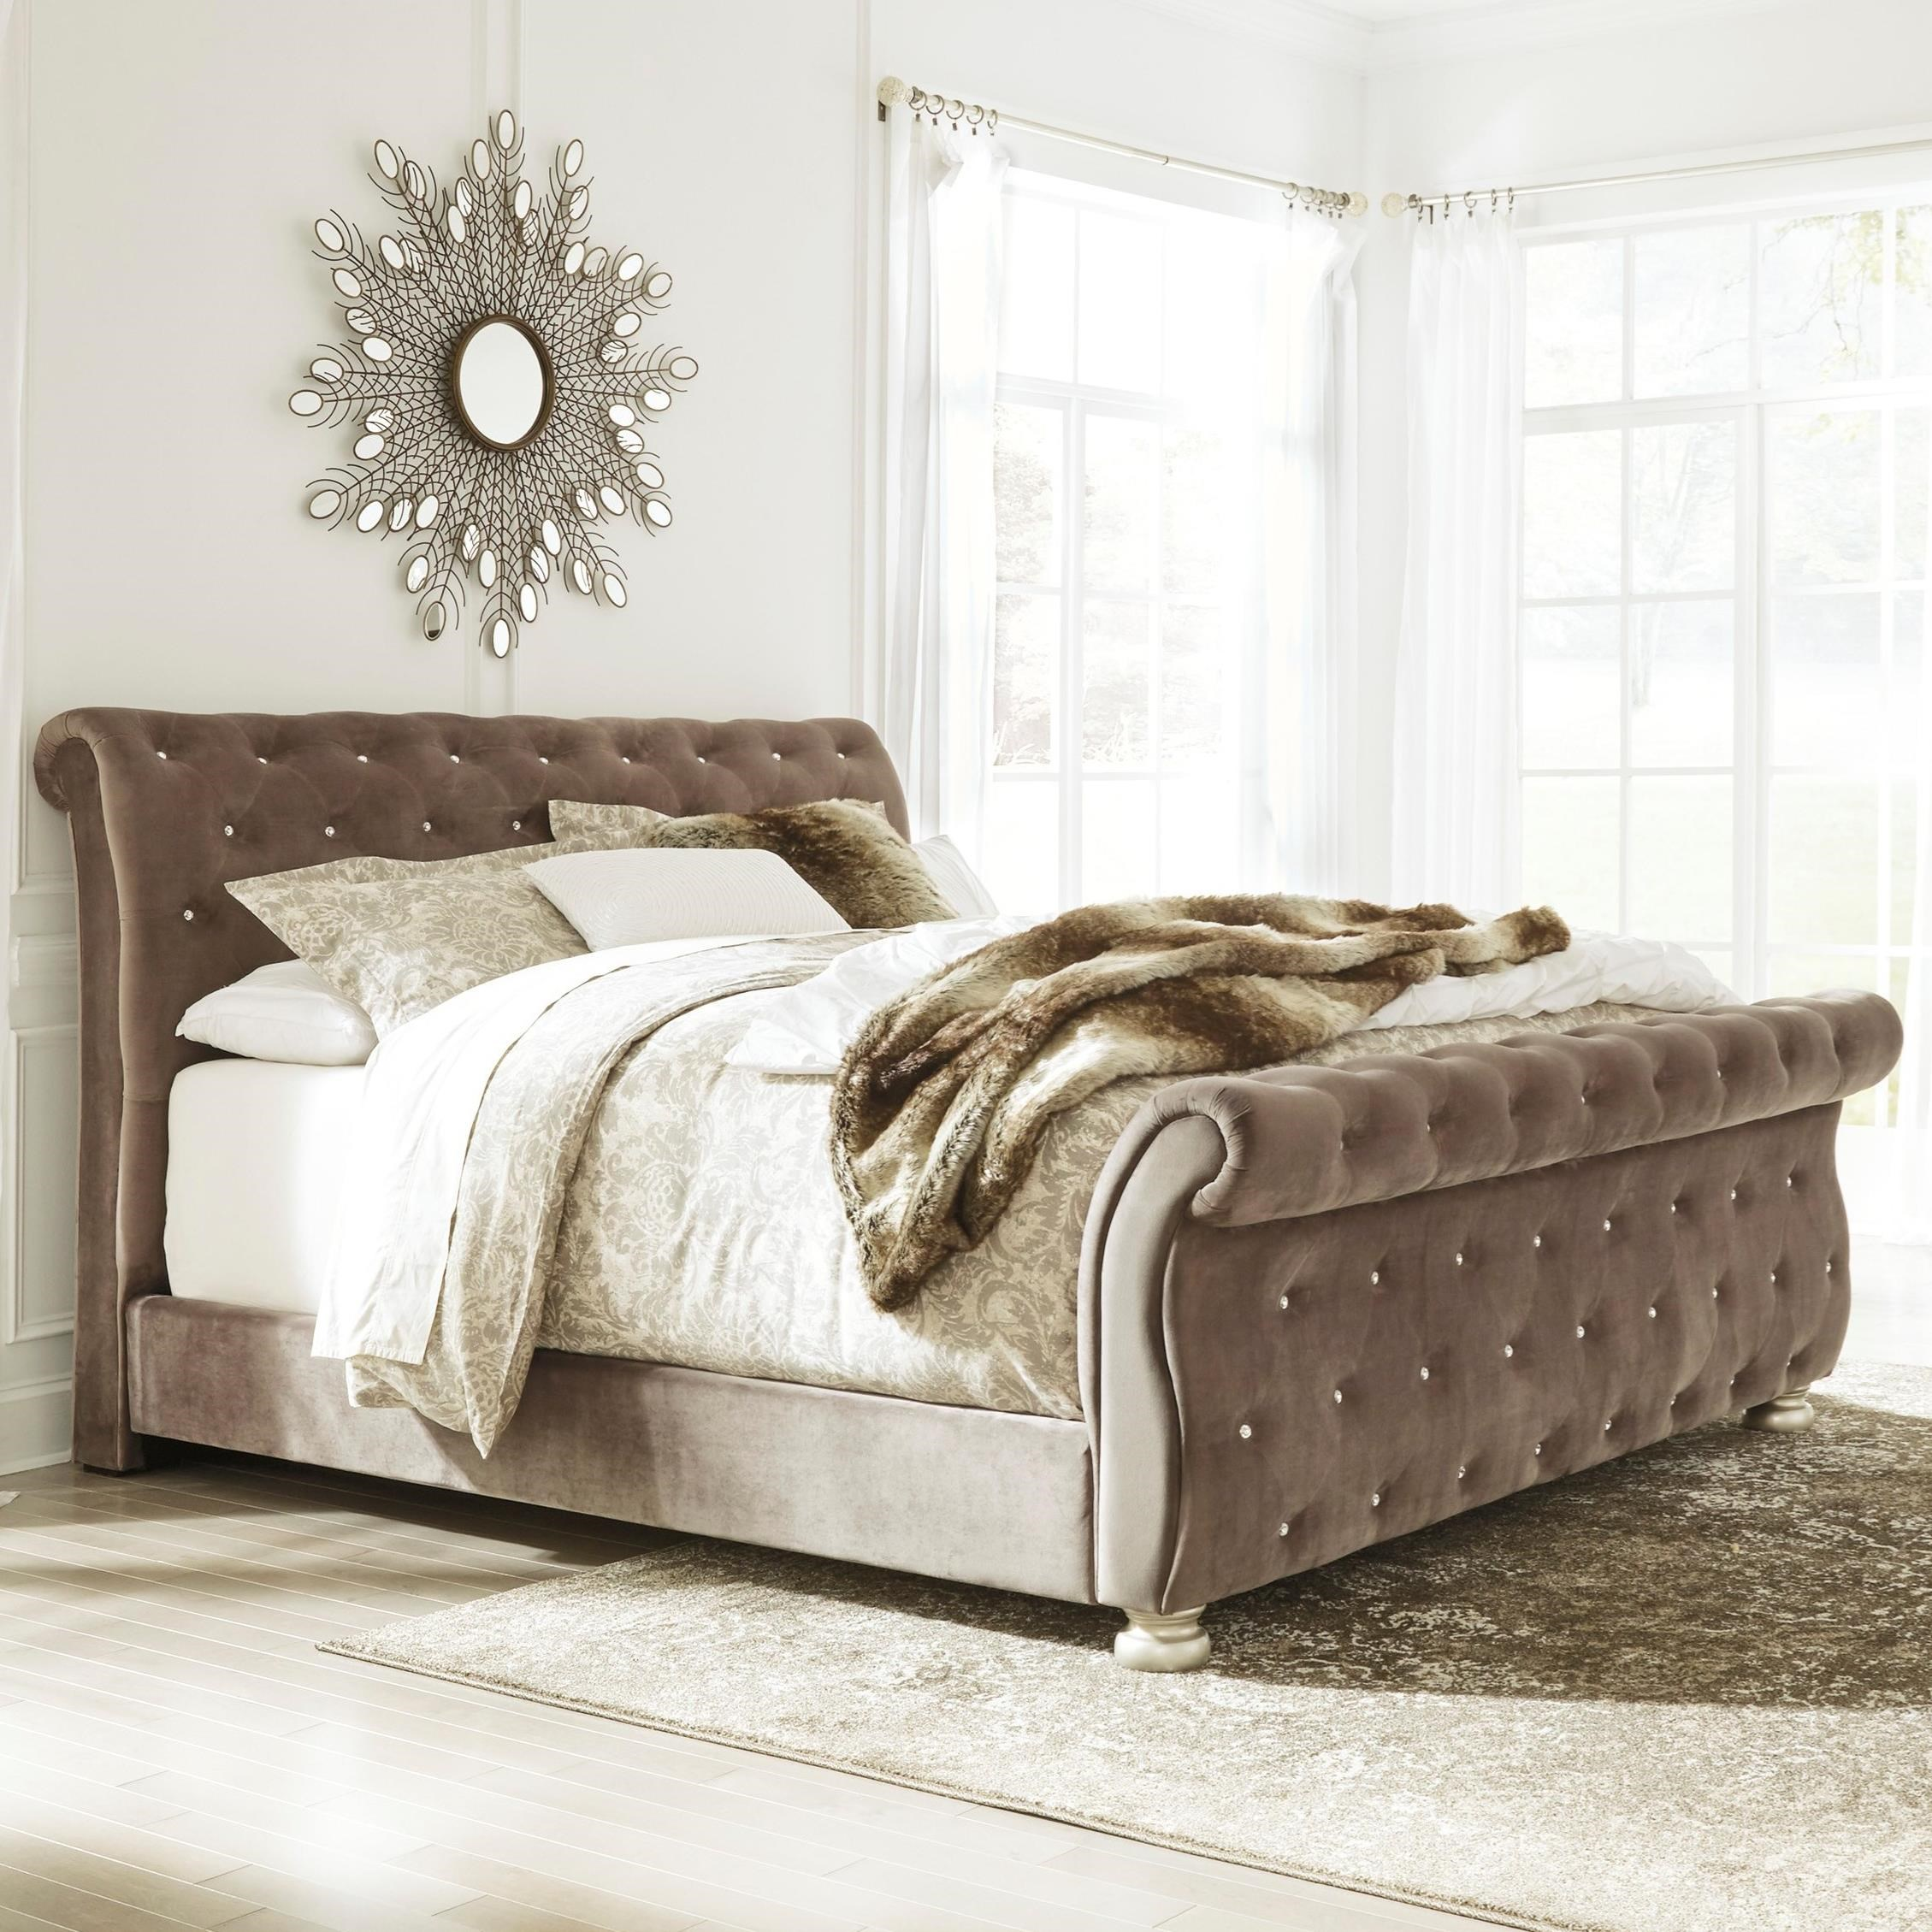 Signature design by ashley cassimore king upholstered sleigh bed with faux crystal tufting for Upholstered sleigh bedroom set